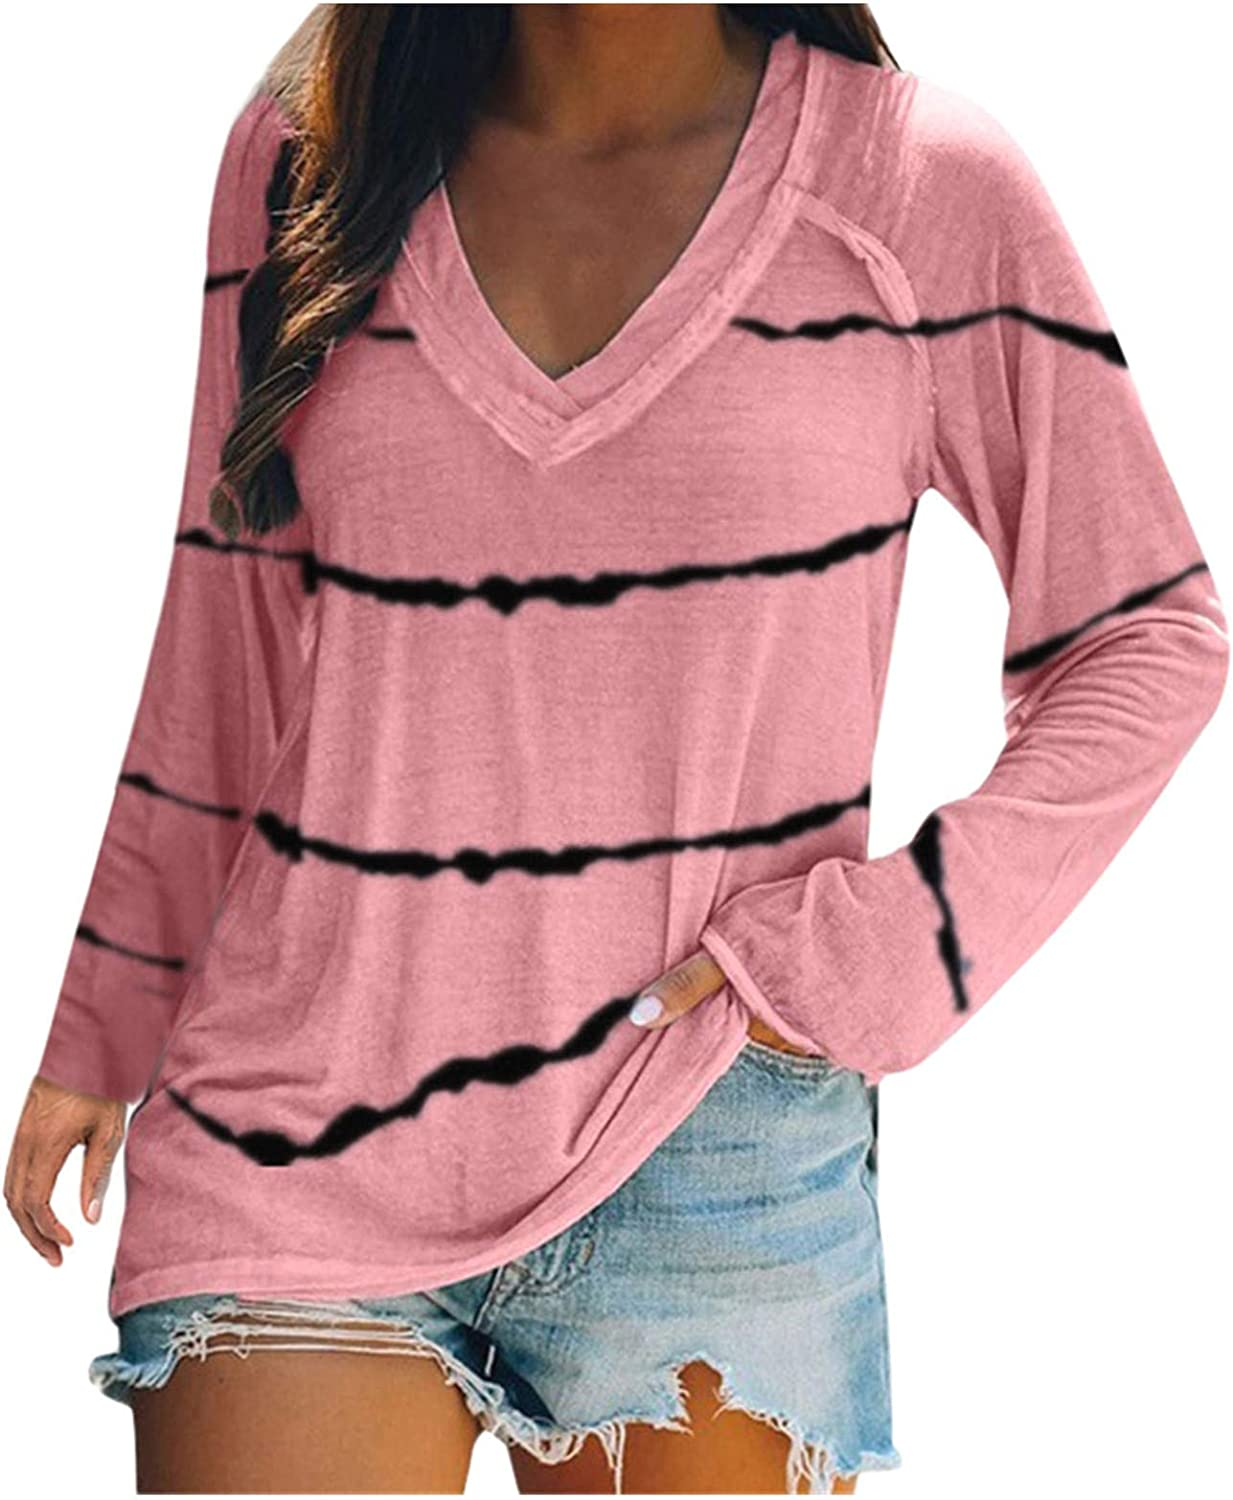 Pullover Shirt for Women's Long Sleeve V-Neck Tunic Tops Casual Blouse T Shirt Button Stripe Loose Tunic Shirts